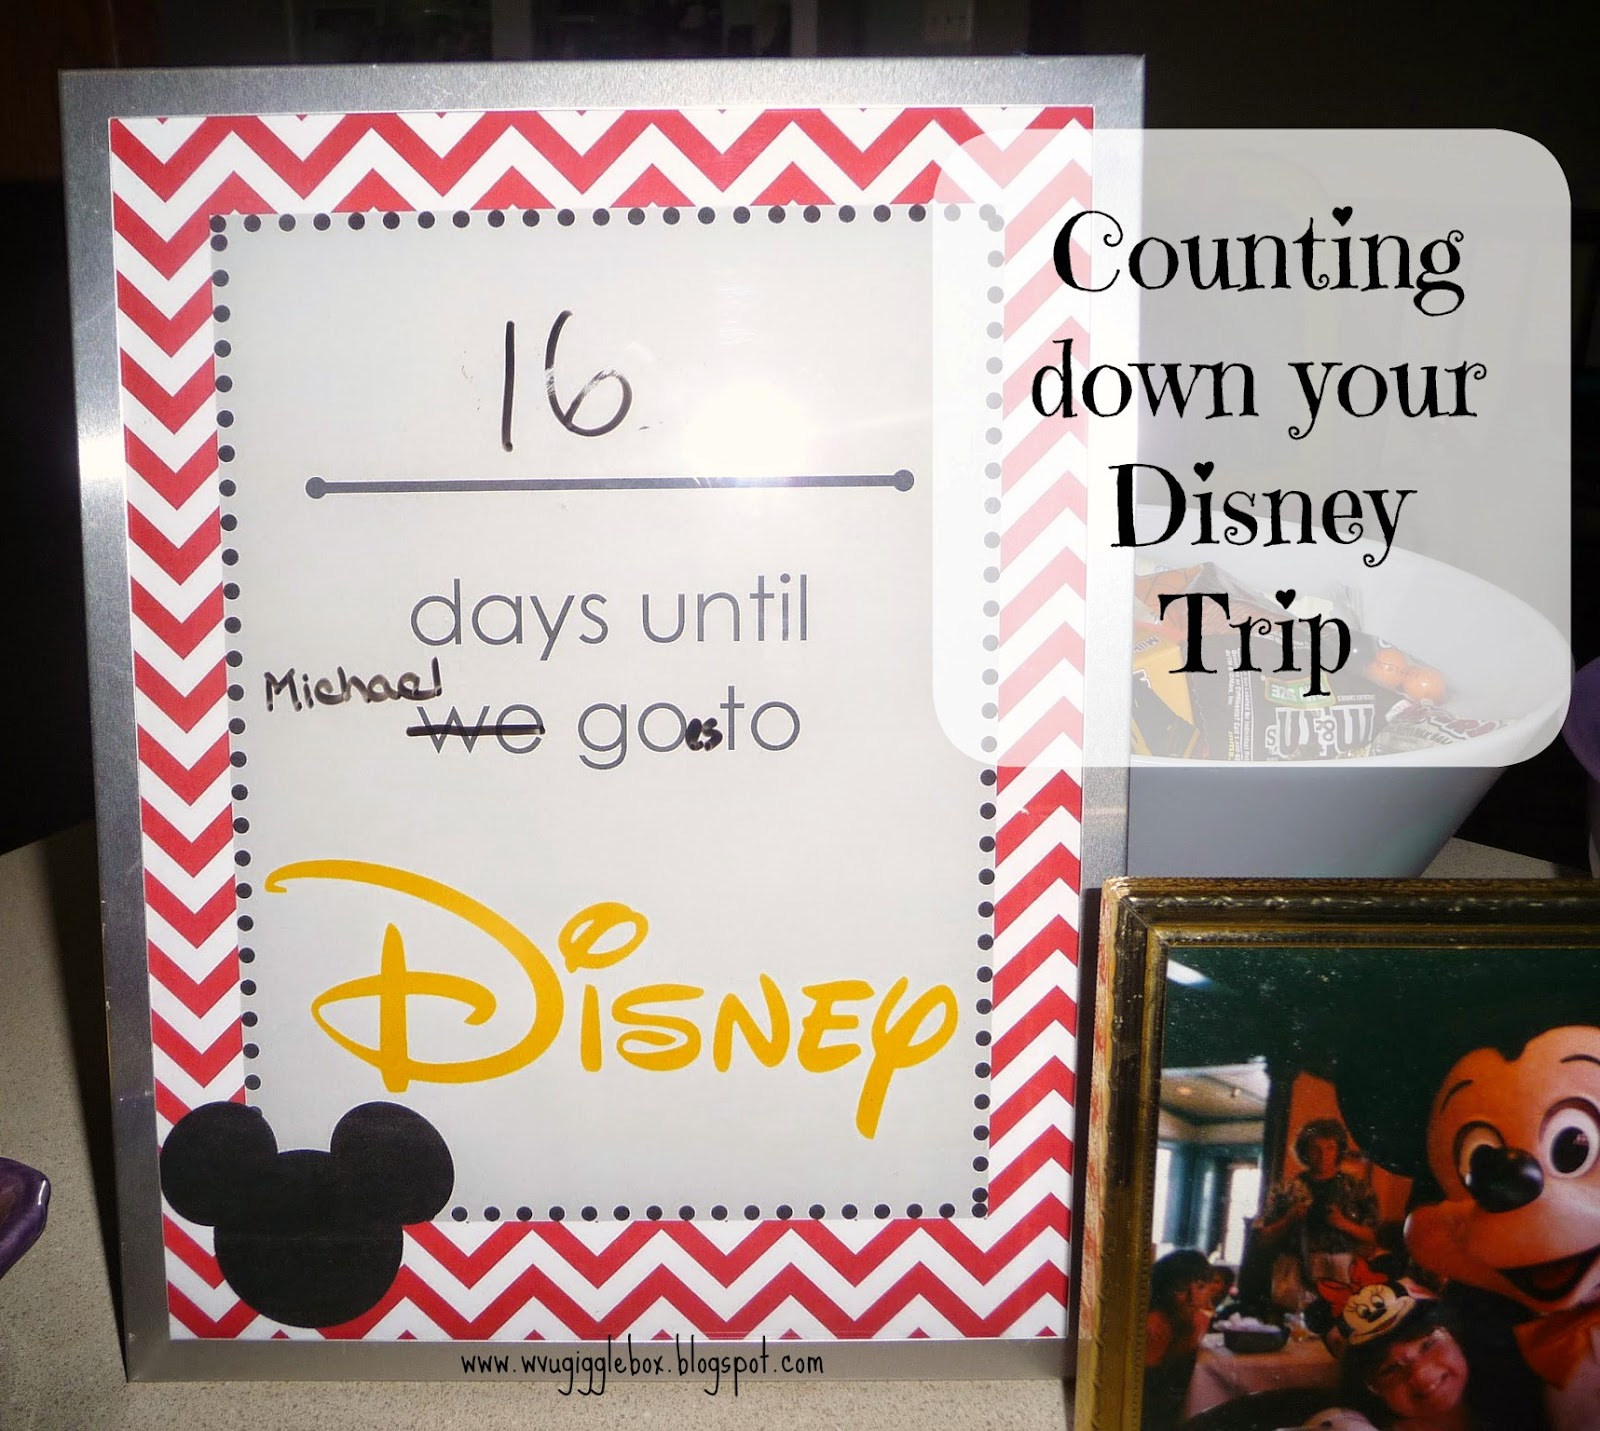 Disney vacation countdown ideas, Walt Disney World vacation,